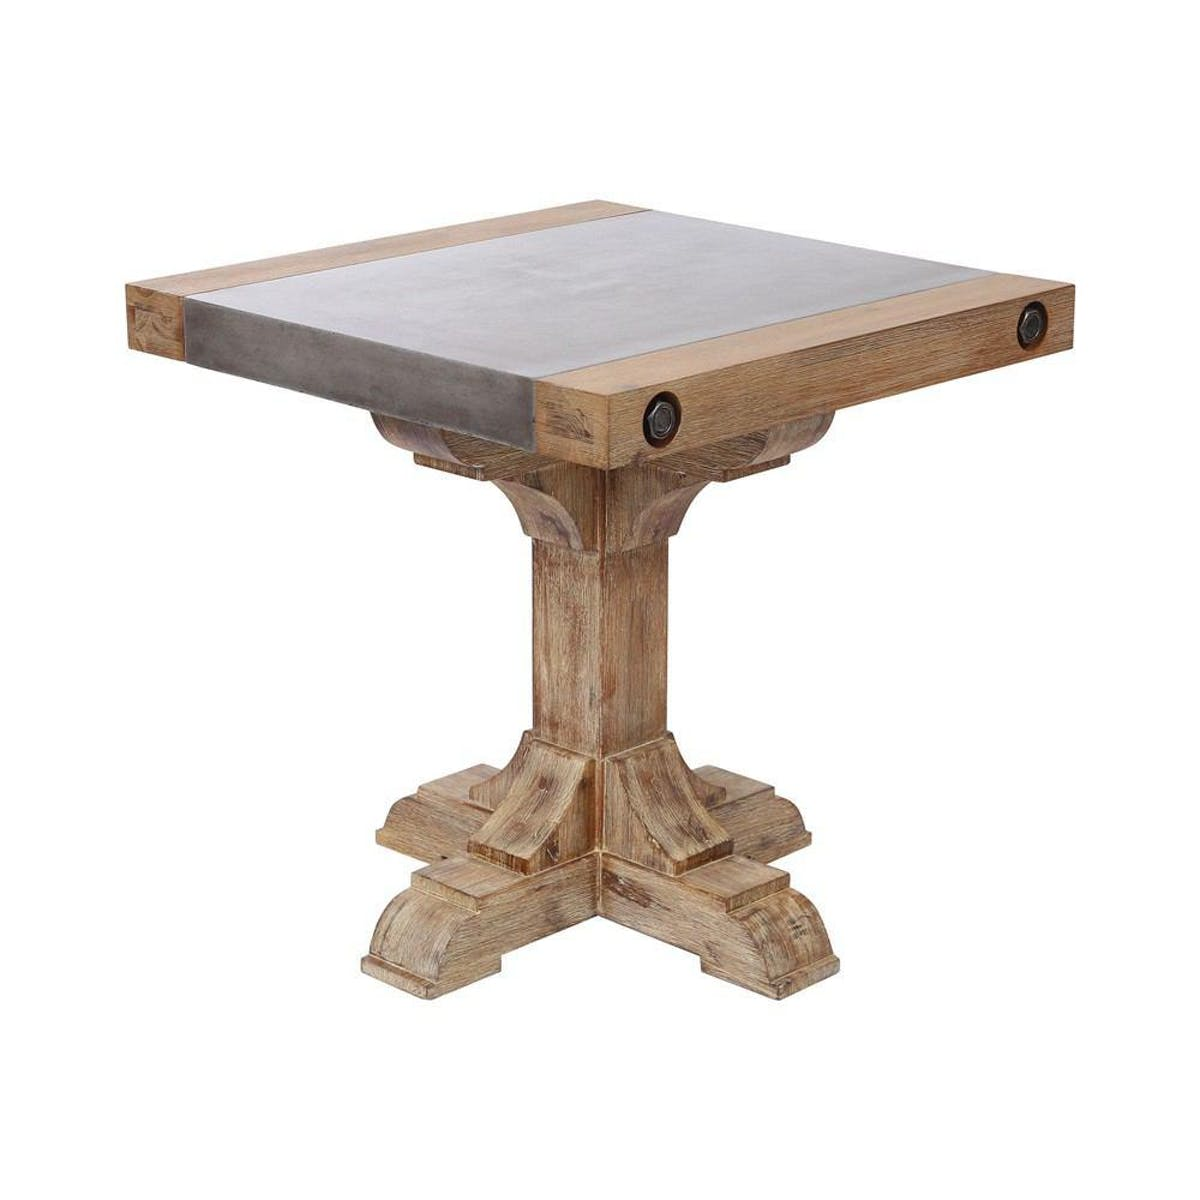 dimond home pirate concrete and wood accent table modish tap expand kitchen work pearl drum throne pier imports patio furniture living room cabinets vanity round metal coffee